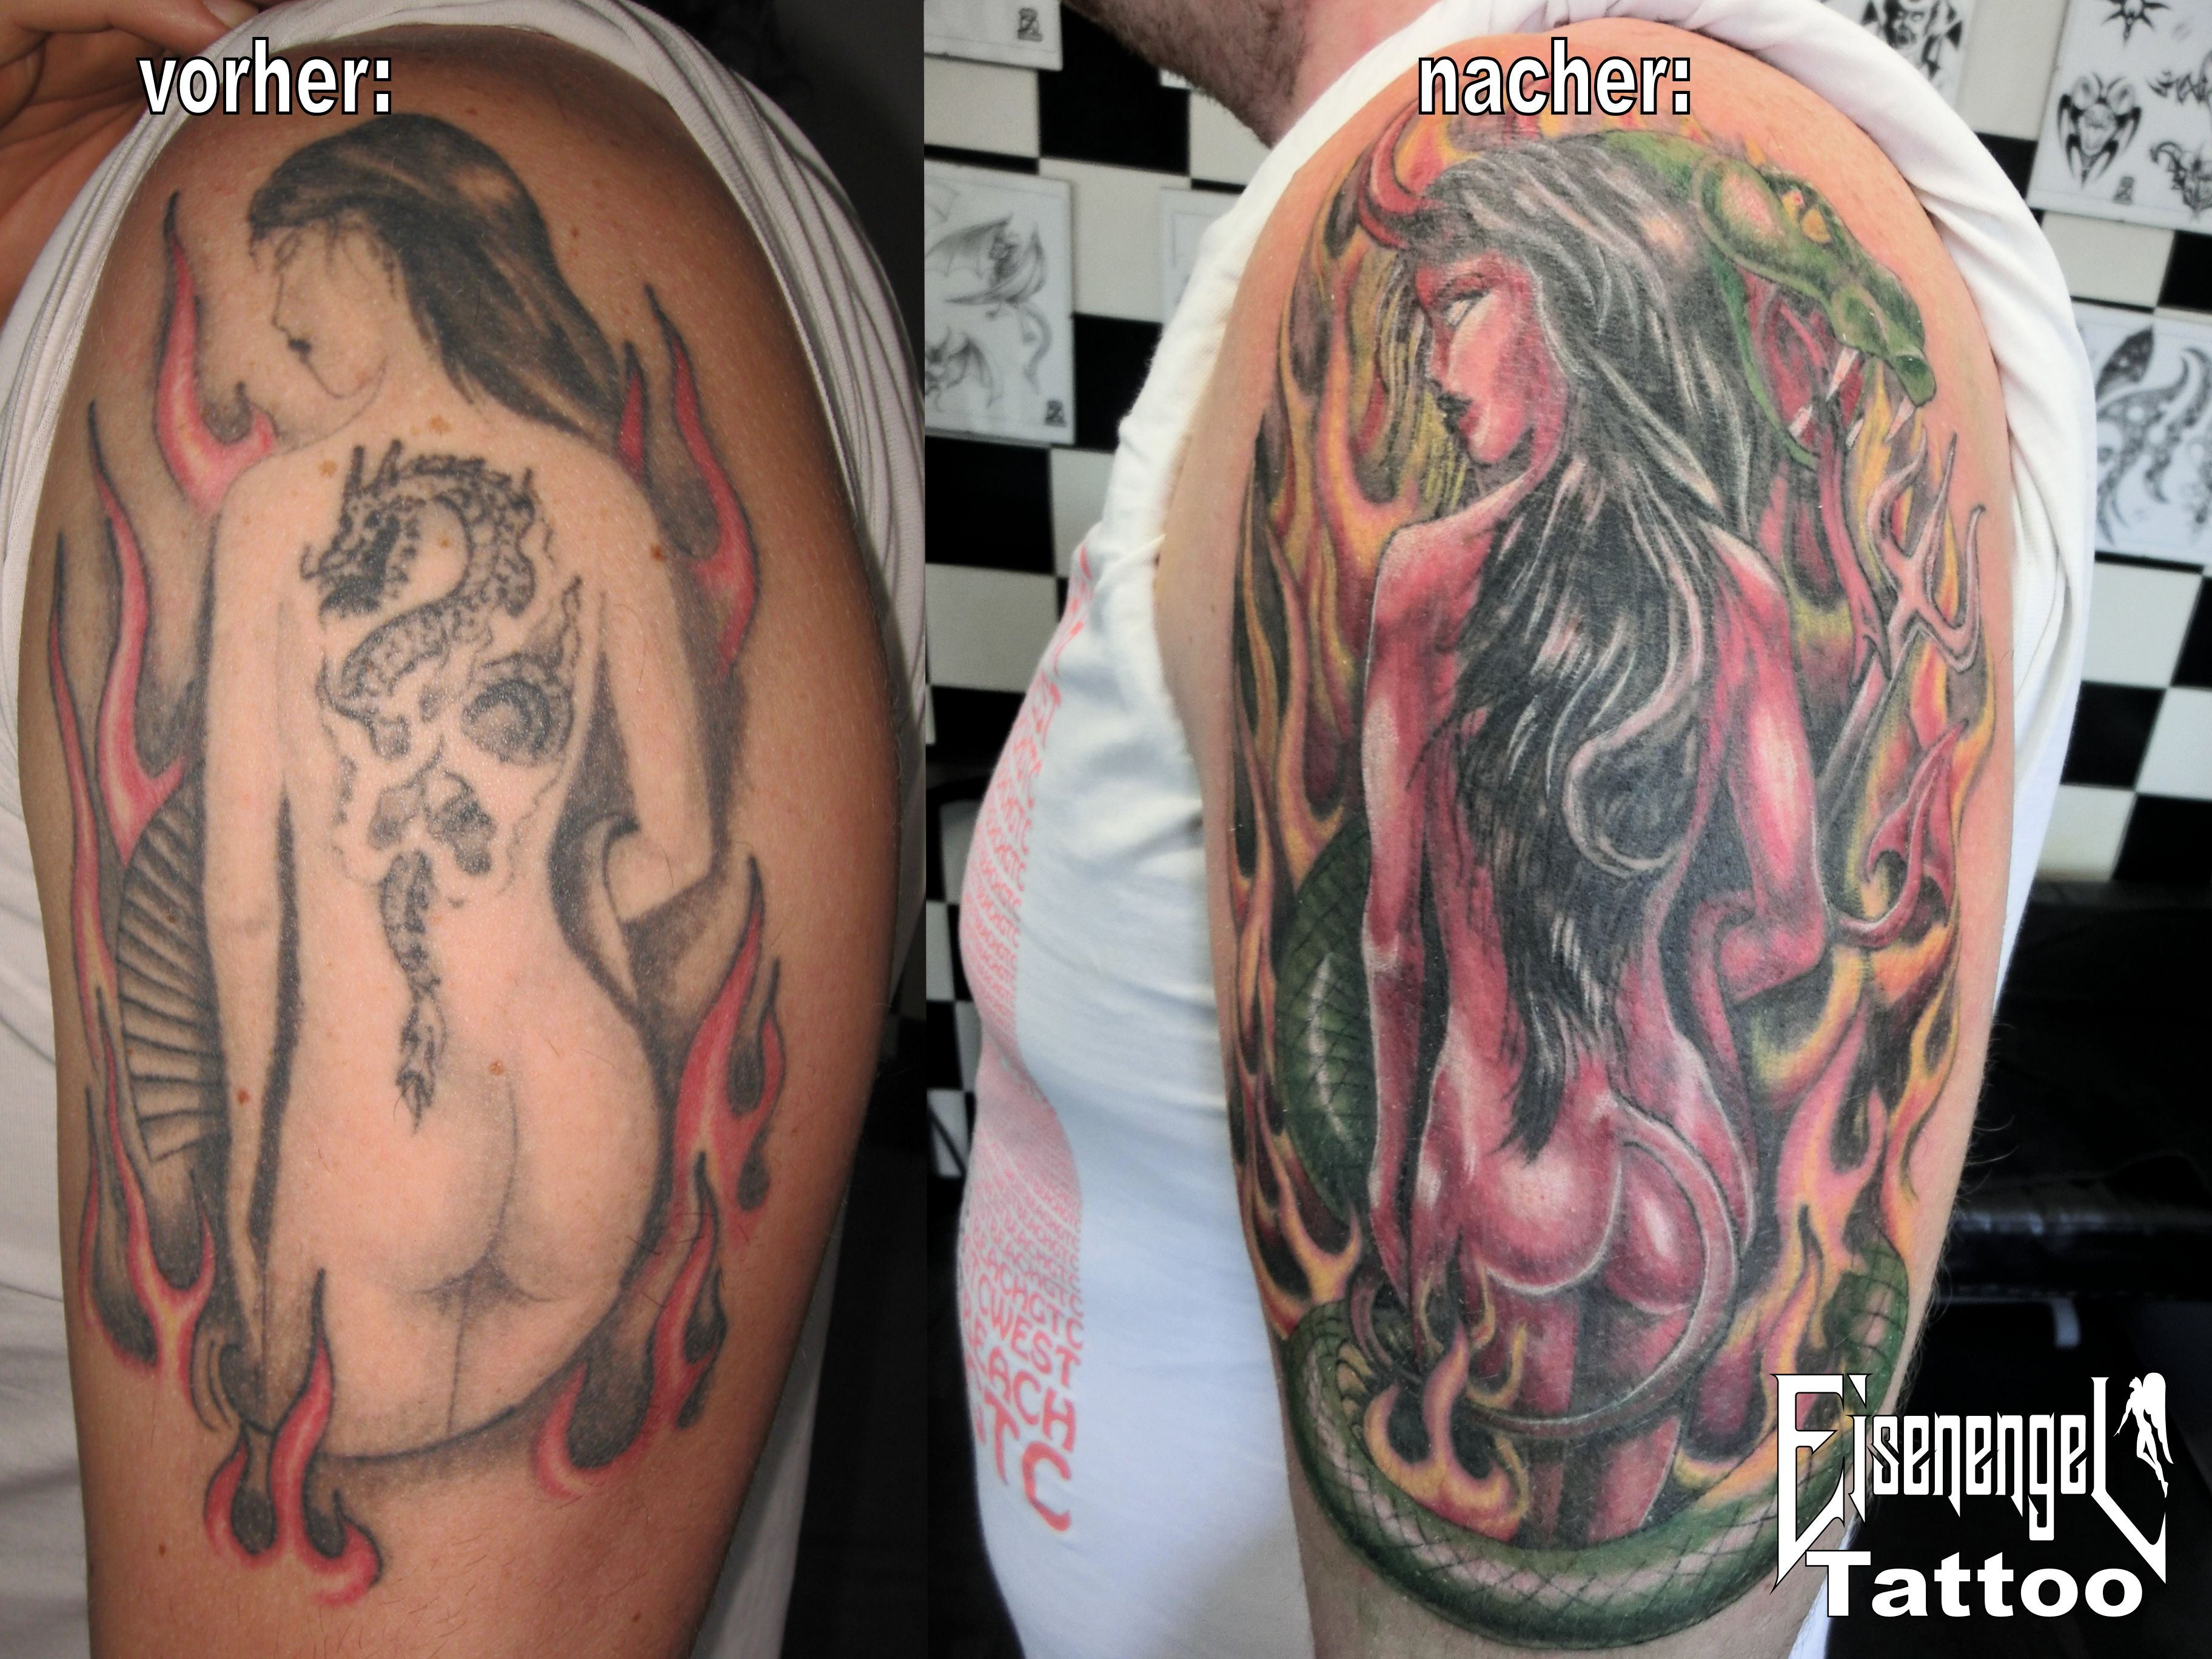 tattoo_coverup_devil_girl.jpg